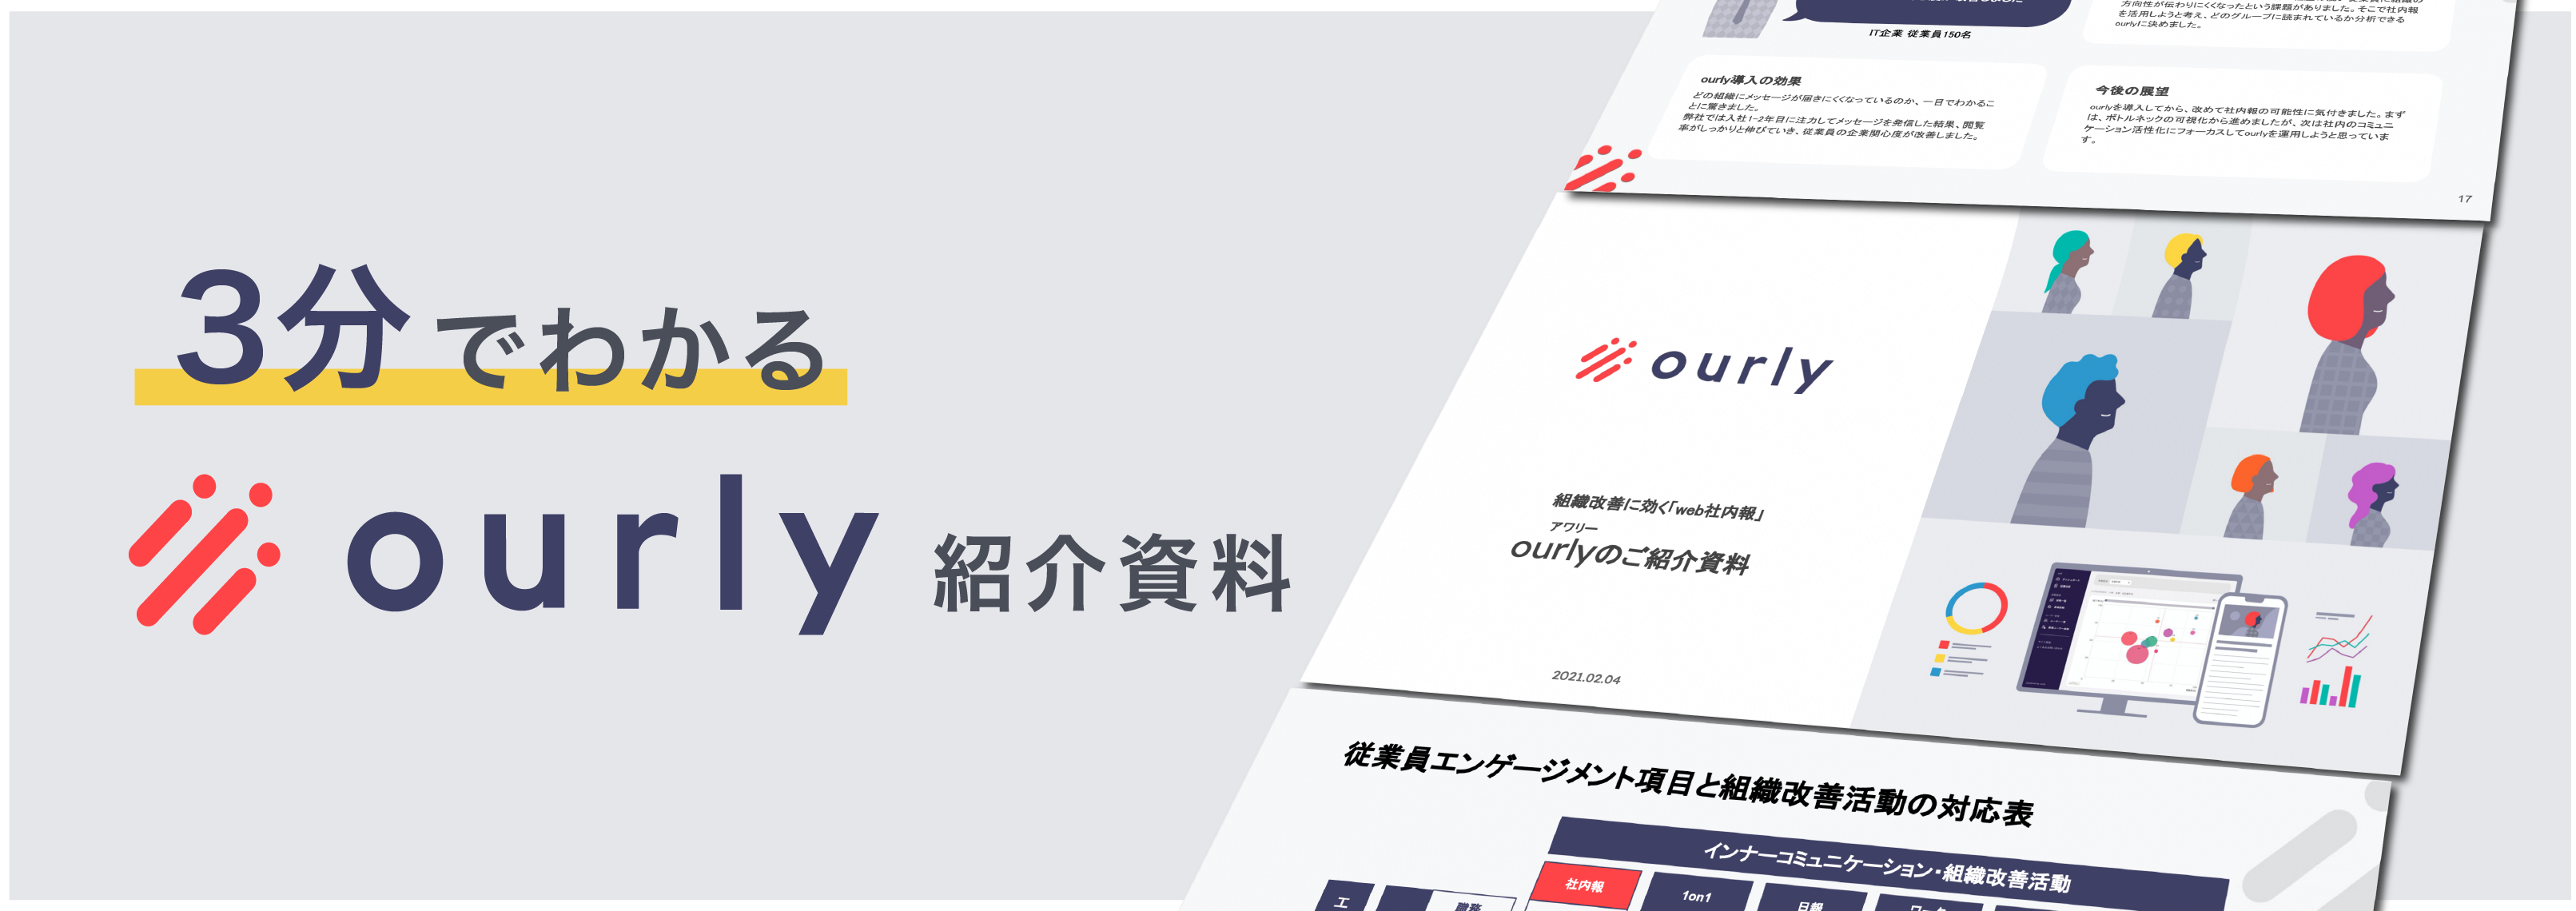 ourly紹介資料